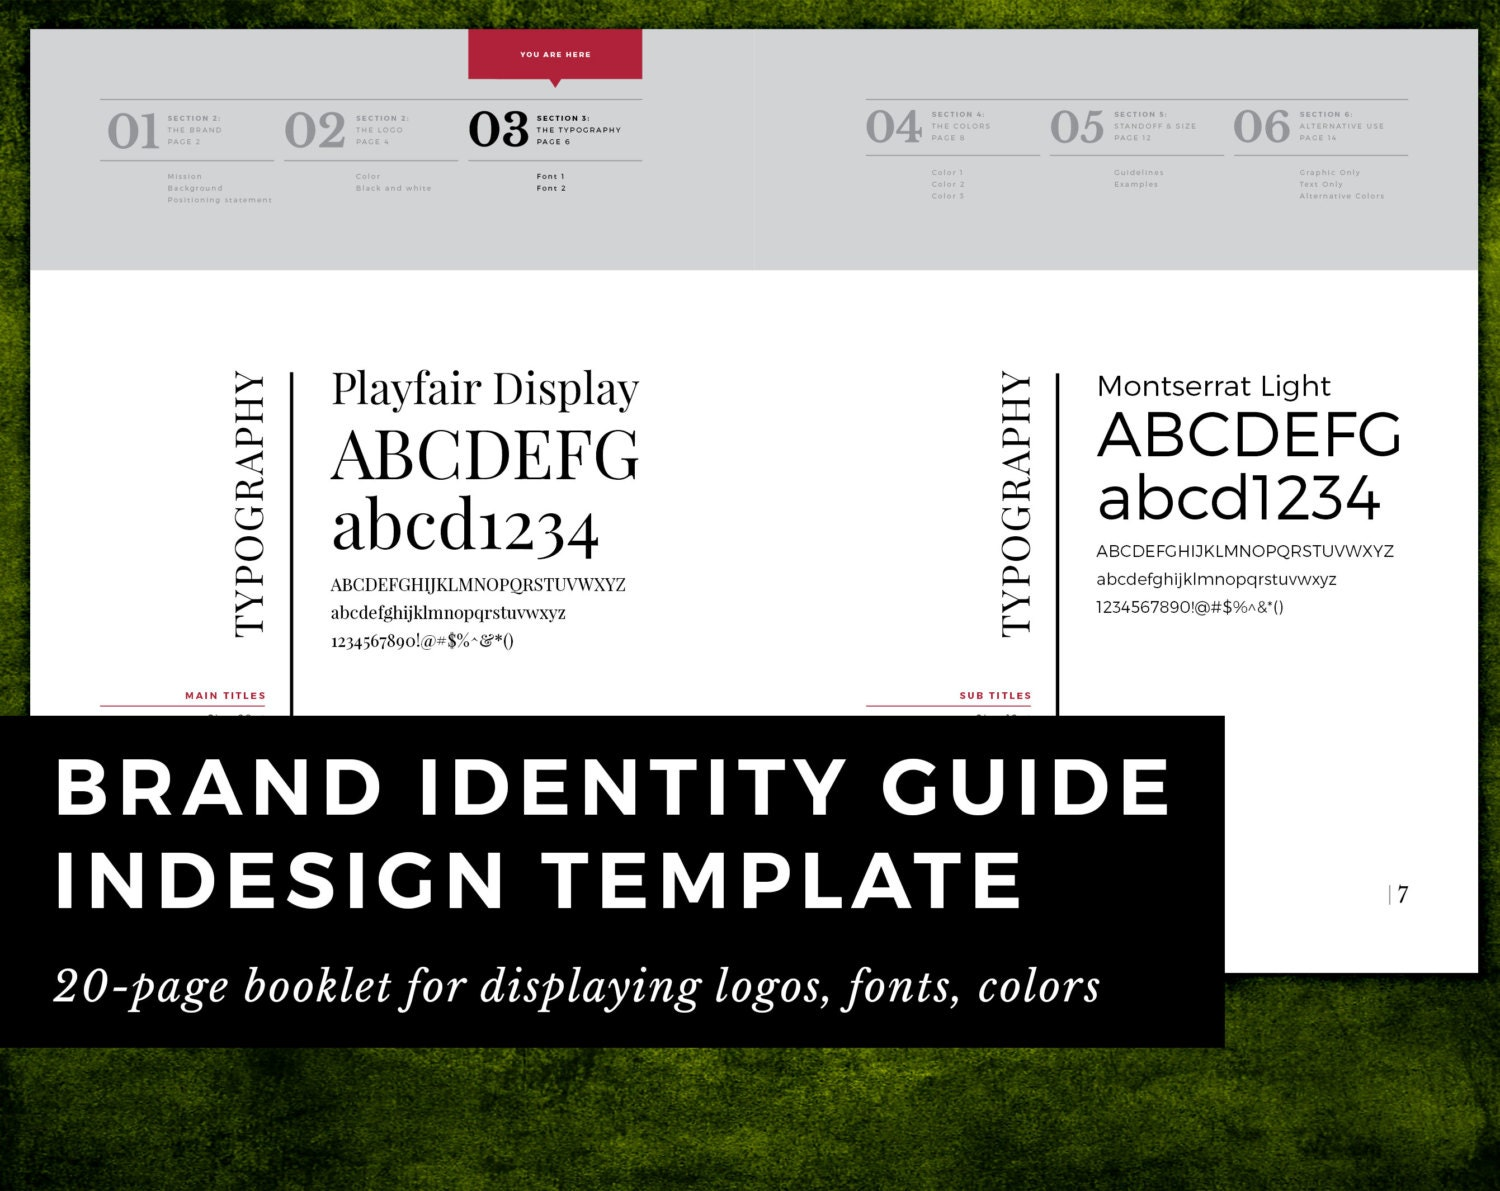 brand identity guide template for indesign cs6+ | printable basic, Presentation templates